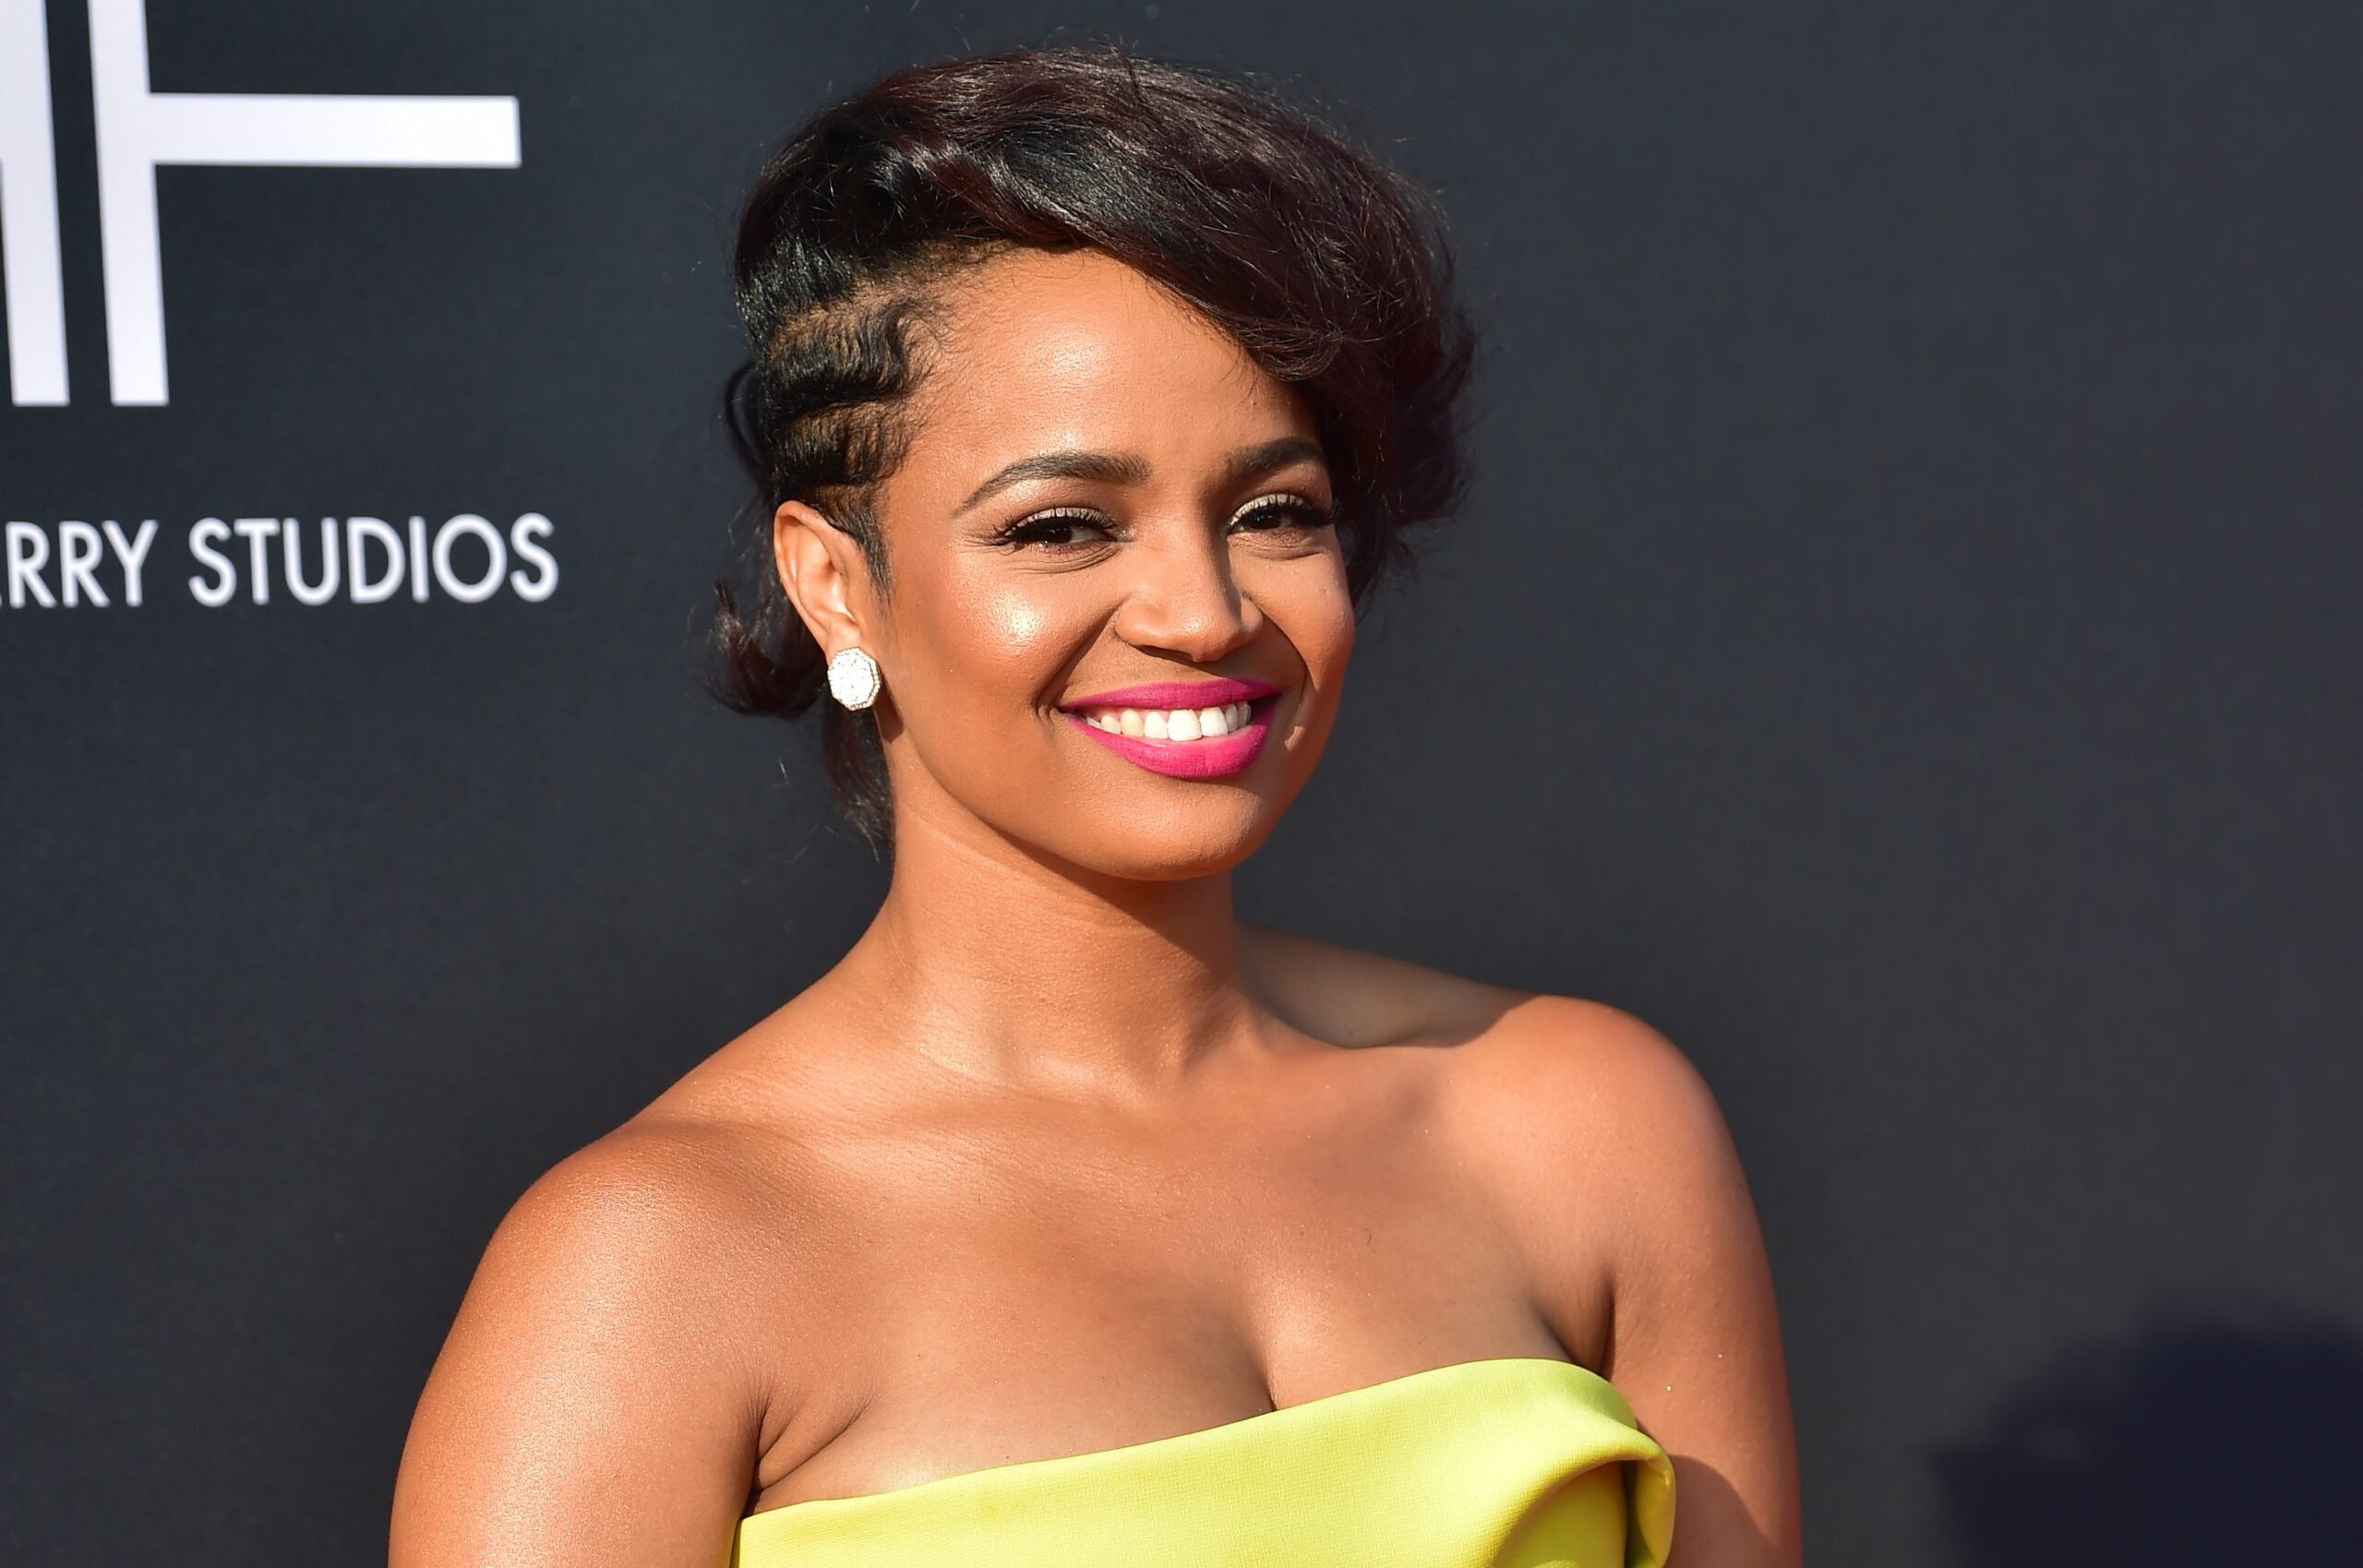 Kyla Pratt Look-a-Like Daughter Has Celebs Like Issa Rae Seeing Double